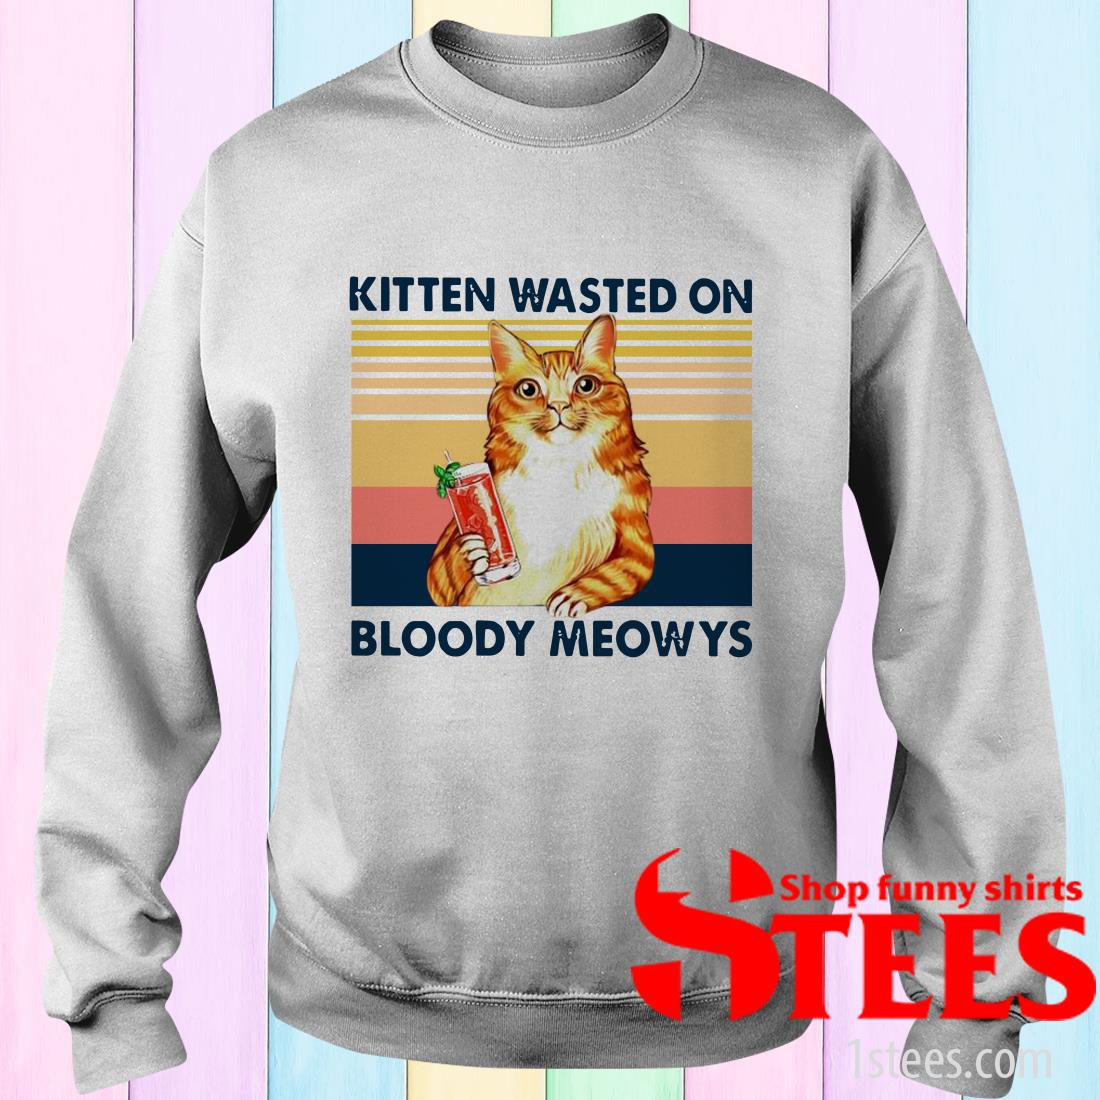 Kitten Wasted On Bloody Meowys Vintage T-Shirt